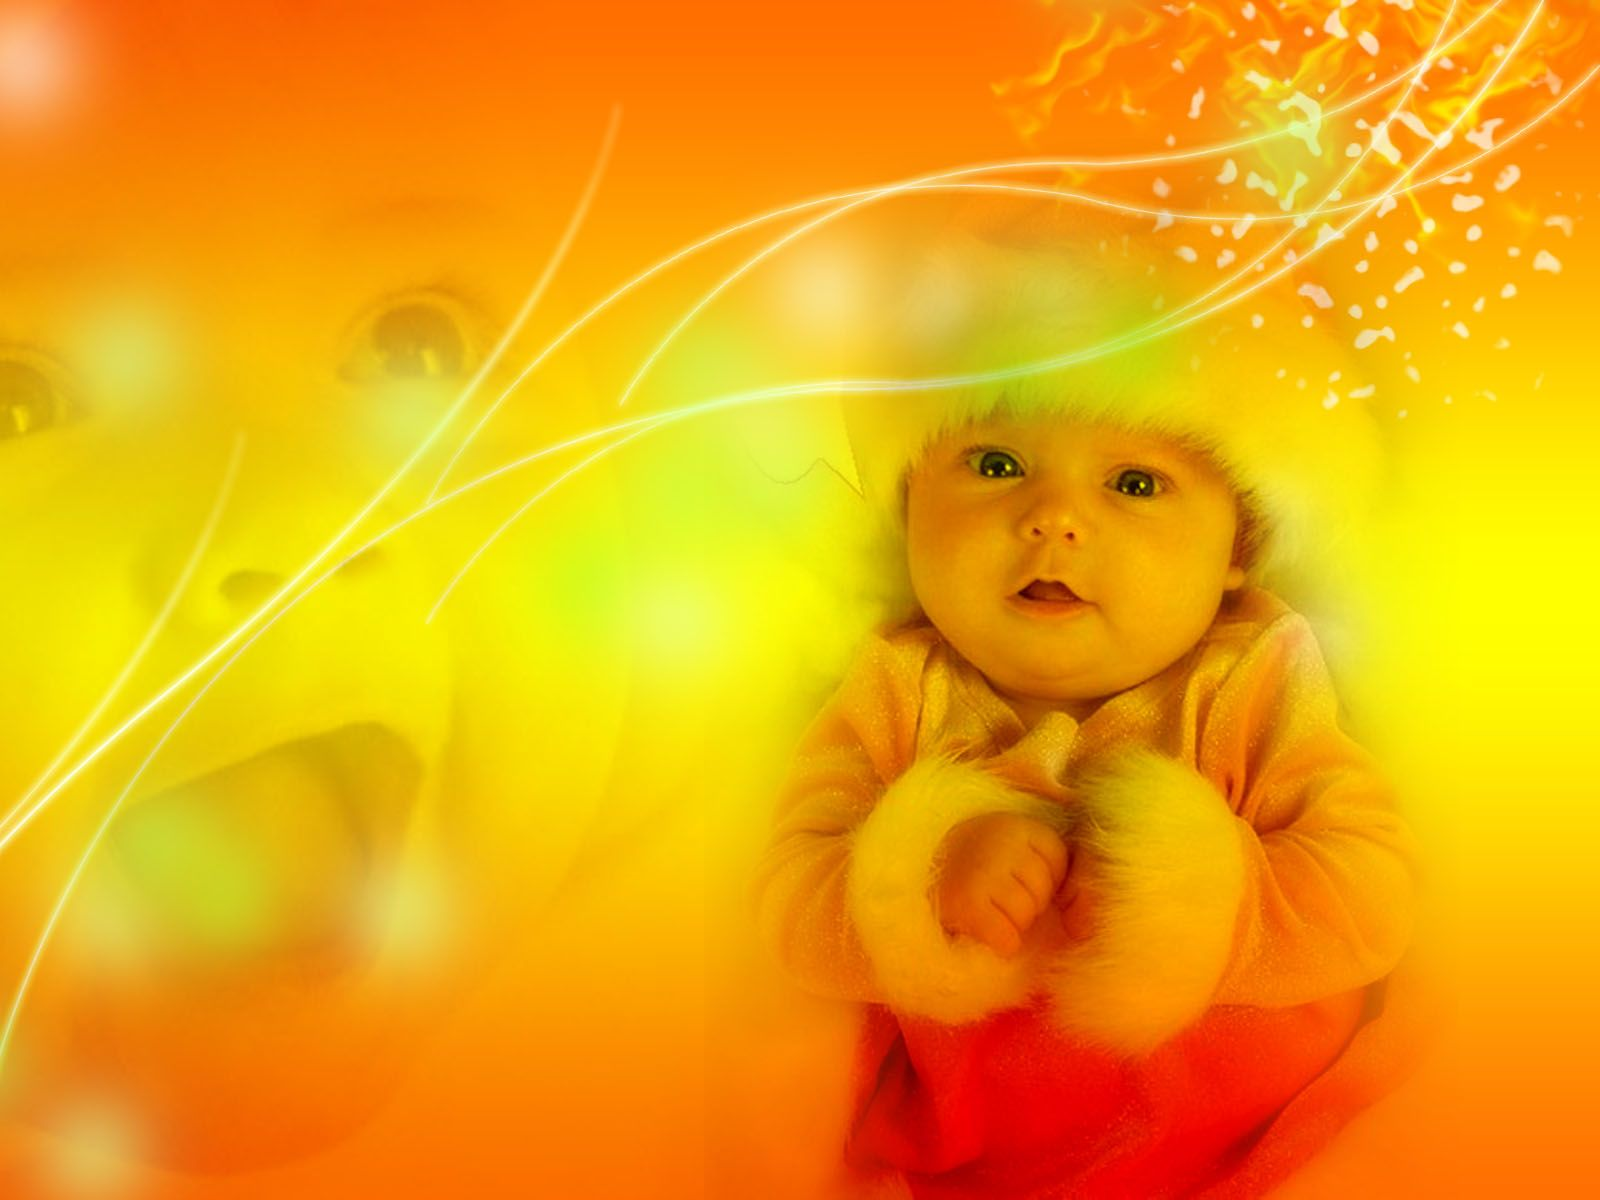 Cute Baby Mobile Wallpaper: Image Detail For -cute-babies-10r.jpg Iphone Wallpapers